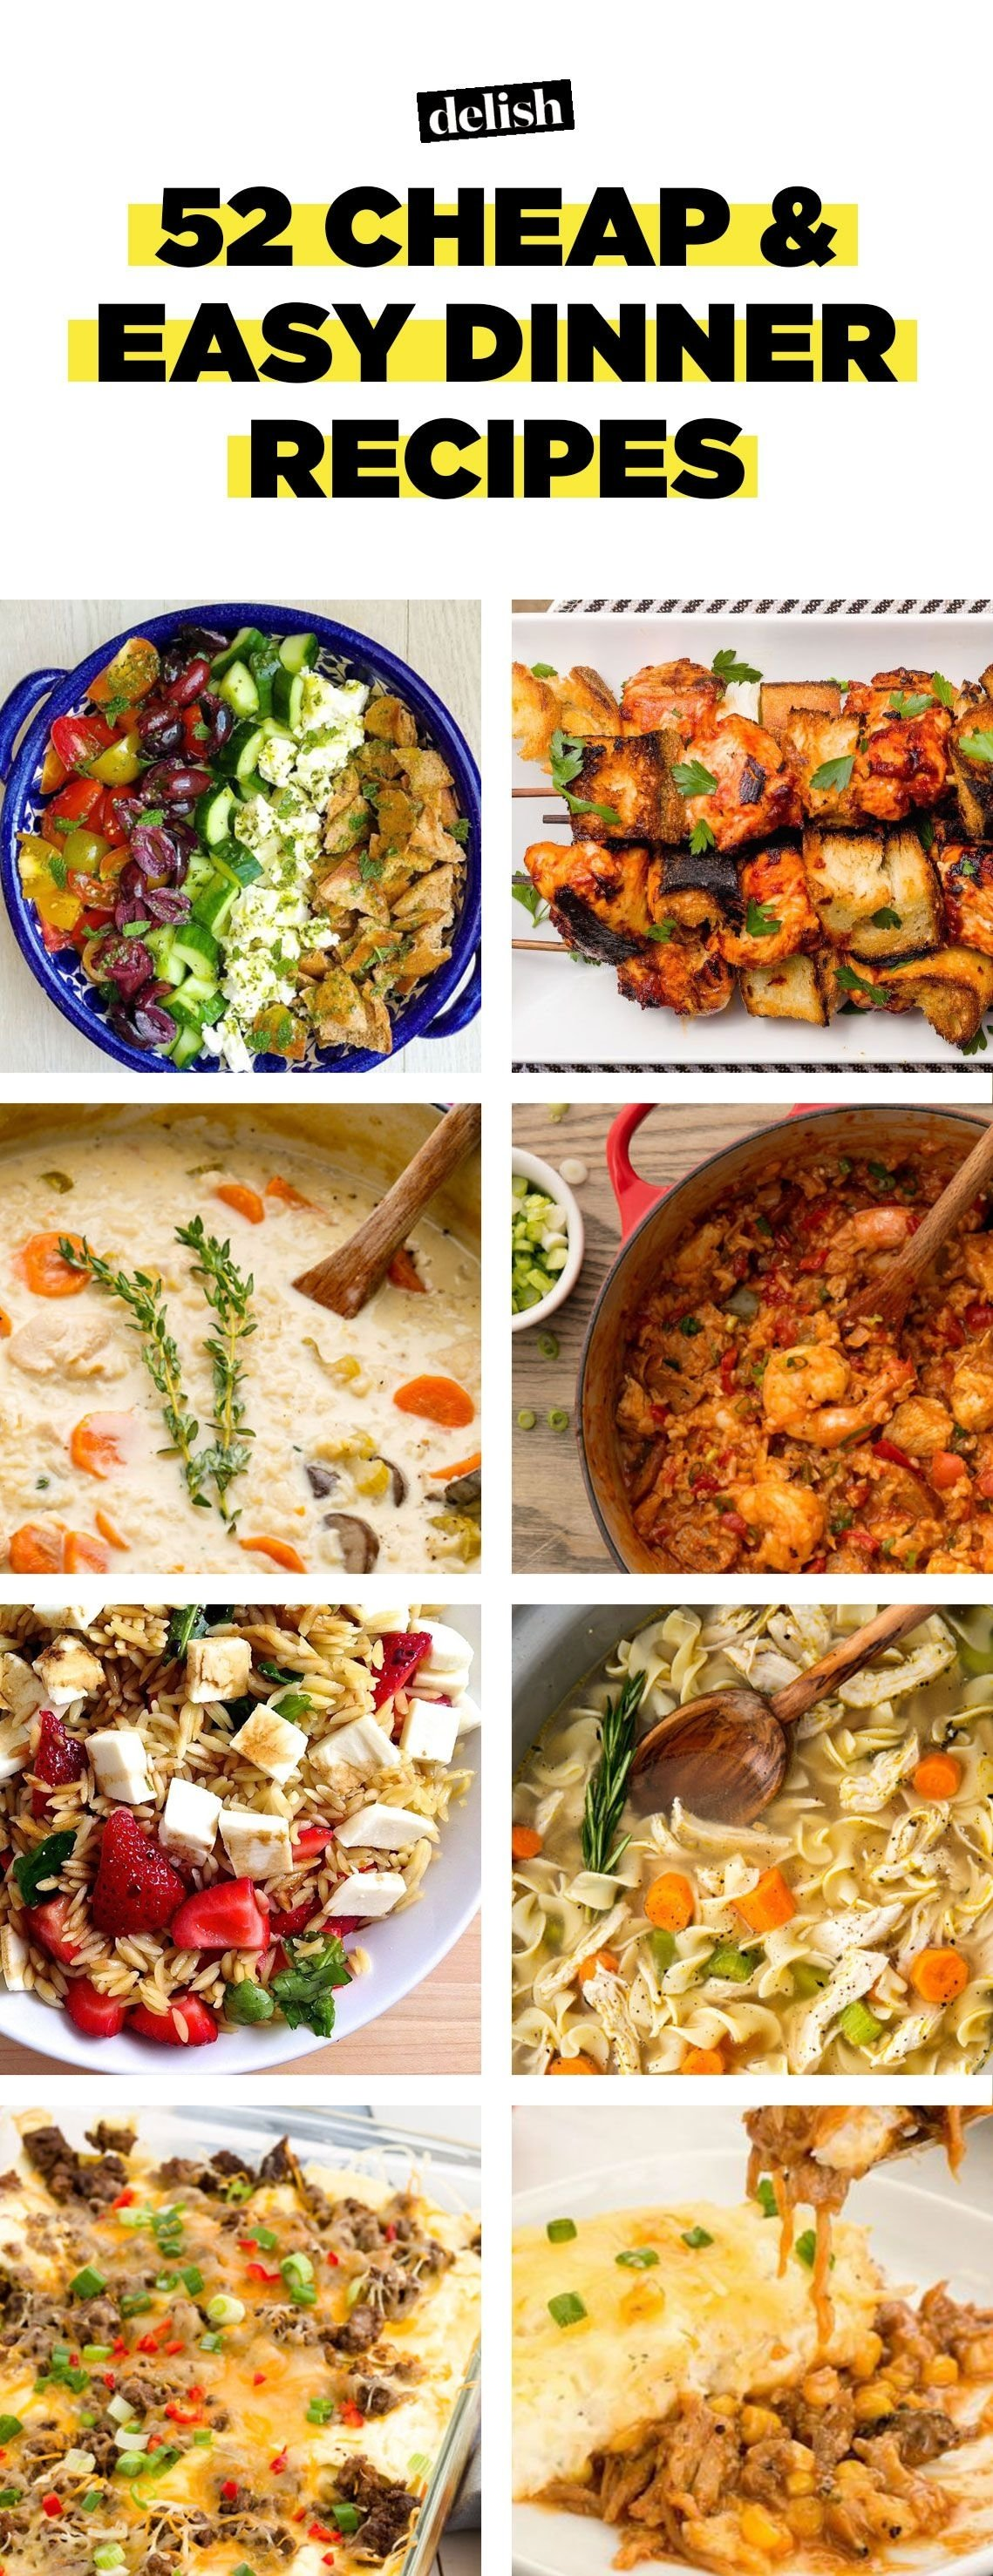 10 Lovely Inexpensive Dinner Ideas For Two 52 easy cheap recipes inexpensive food ideas delish 19 2020